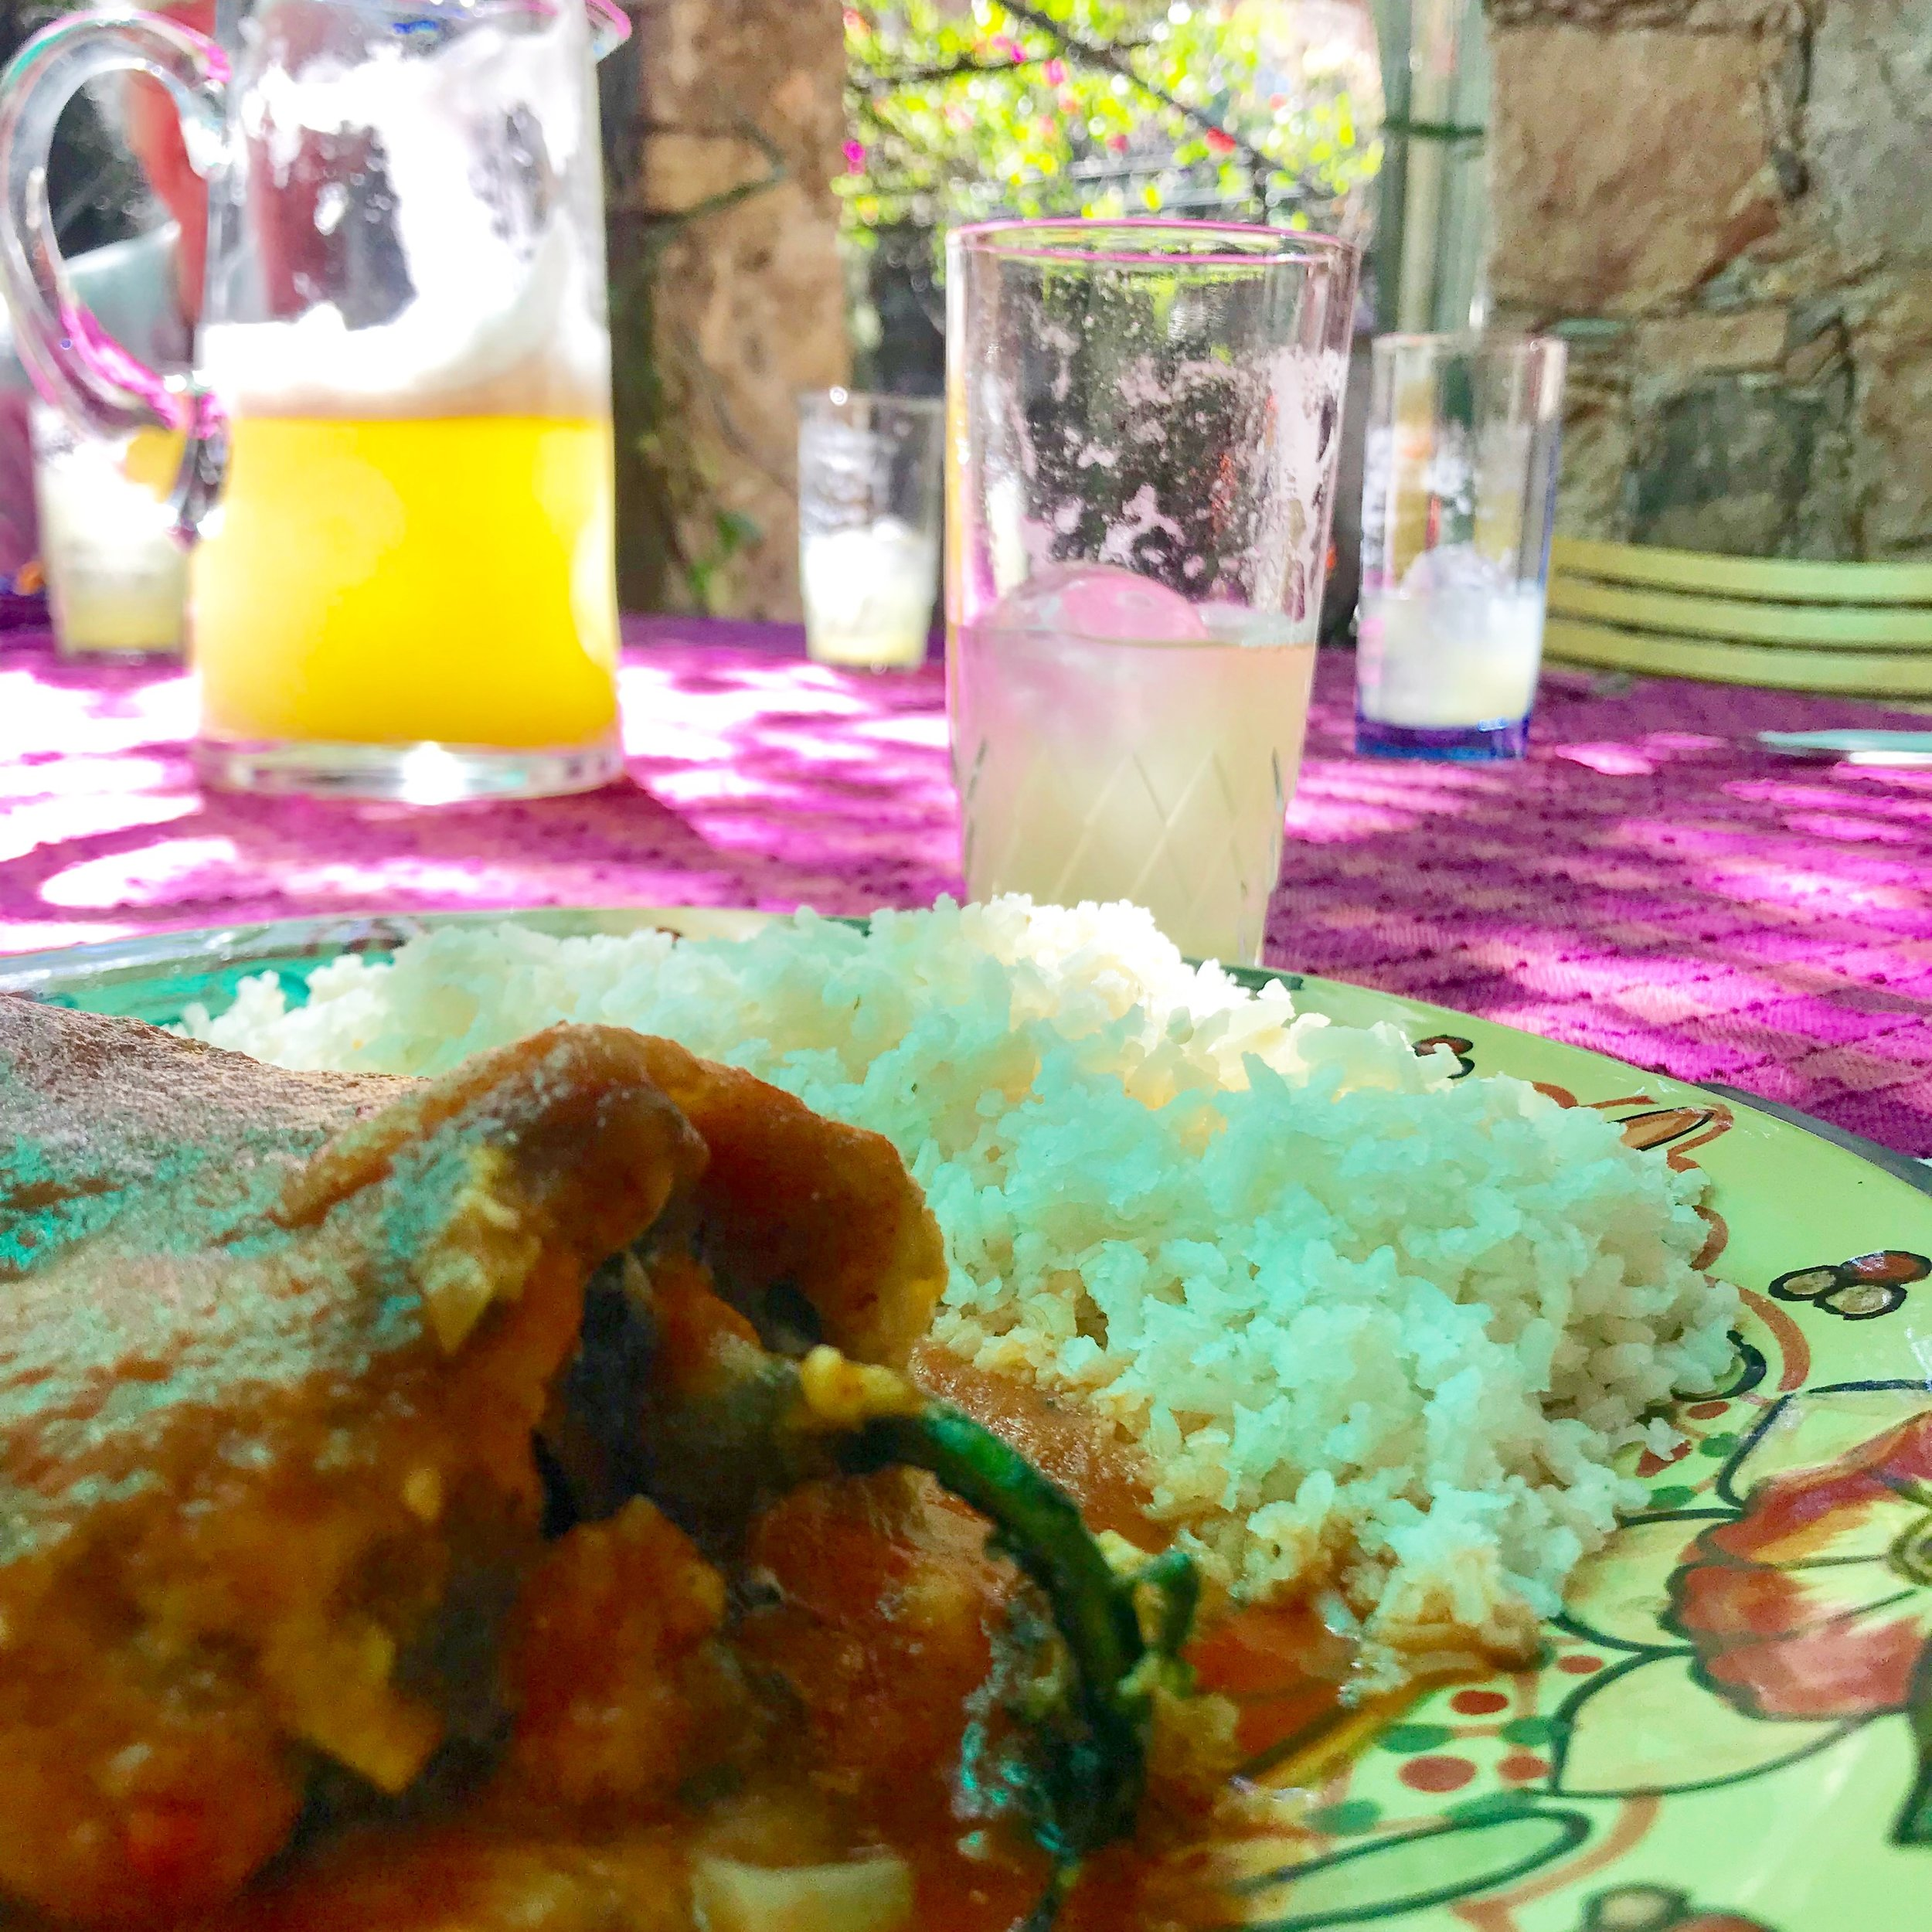 This was the best chili relleno I've ever had!